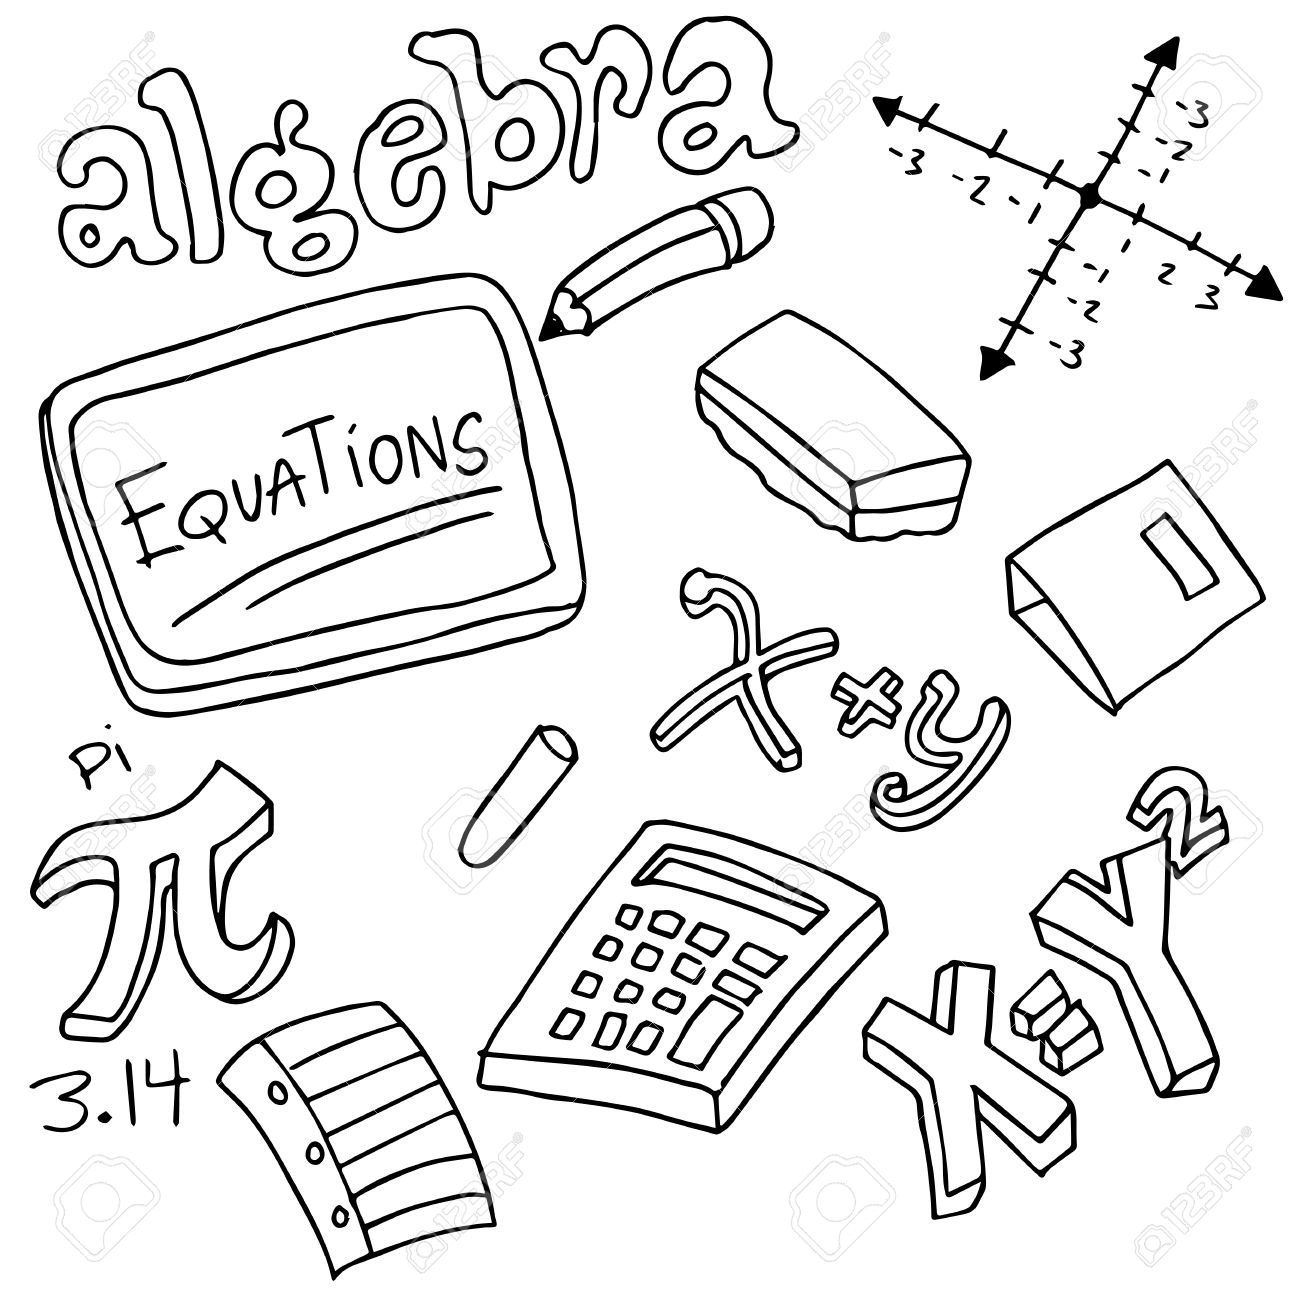 An Image Of Algebra Symbols And Objects. Royalty Free Cliparts ...